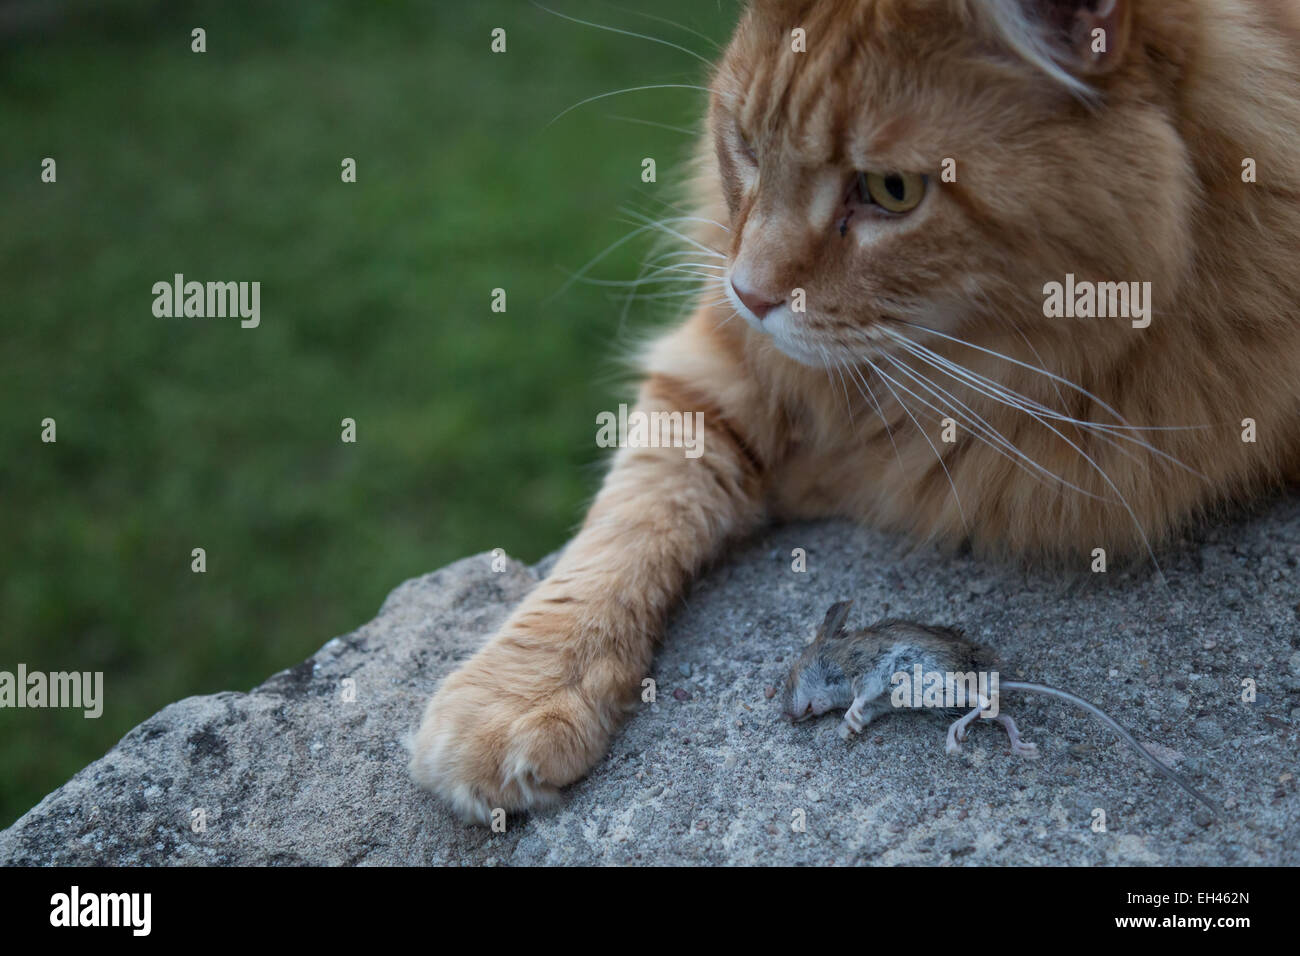 Cat lying ext to a dead mouse on a rock. Stock Photo